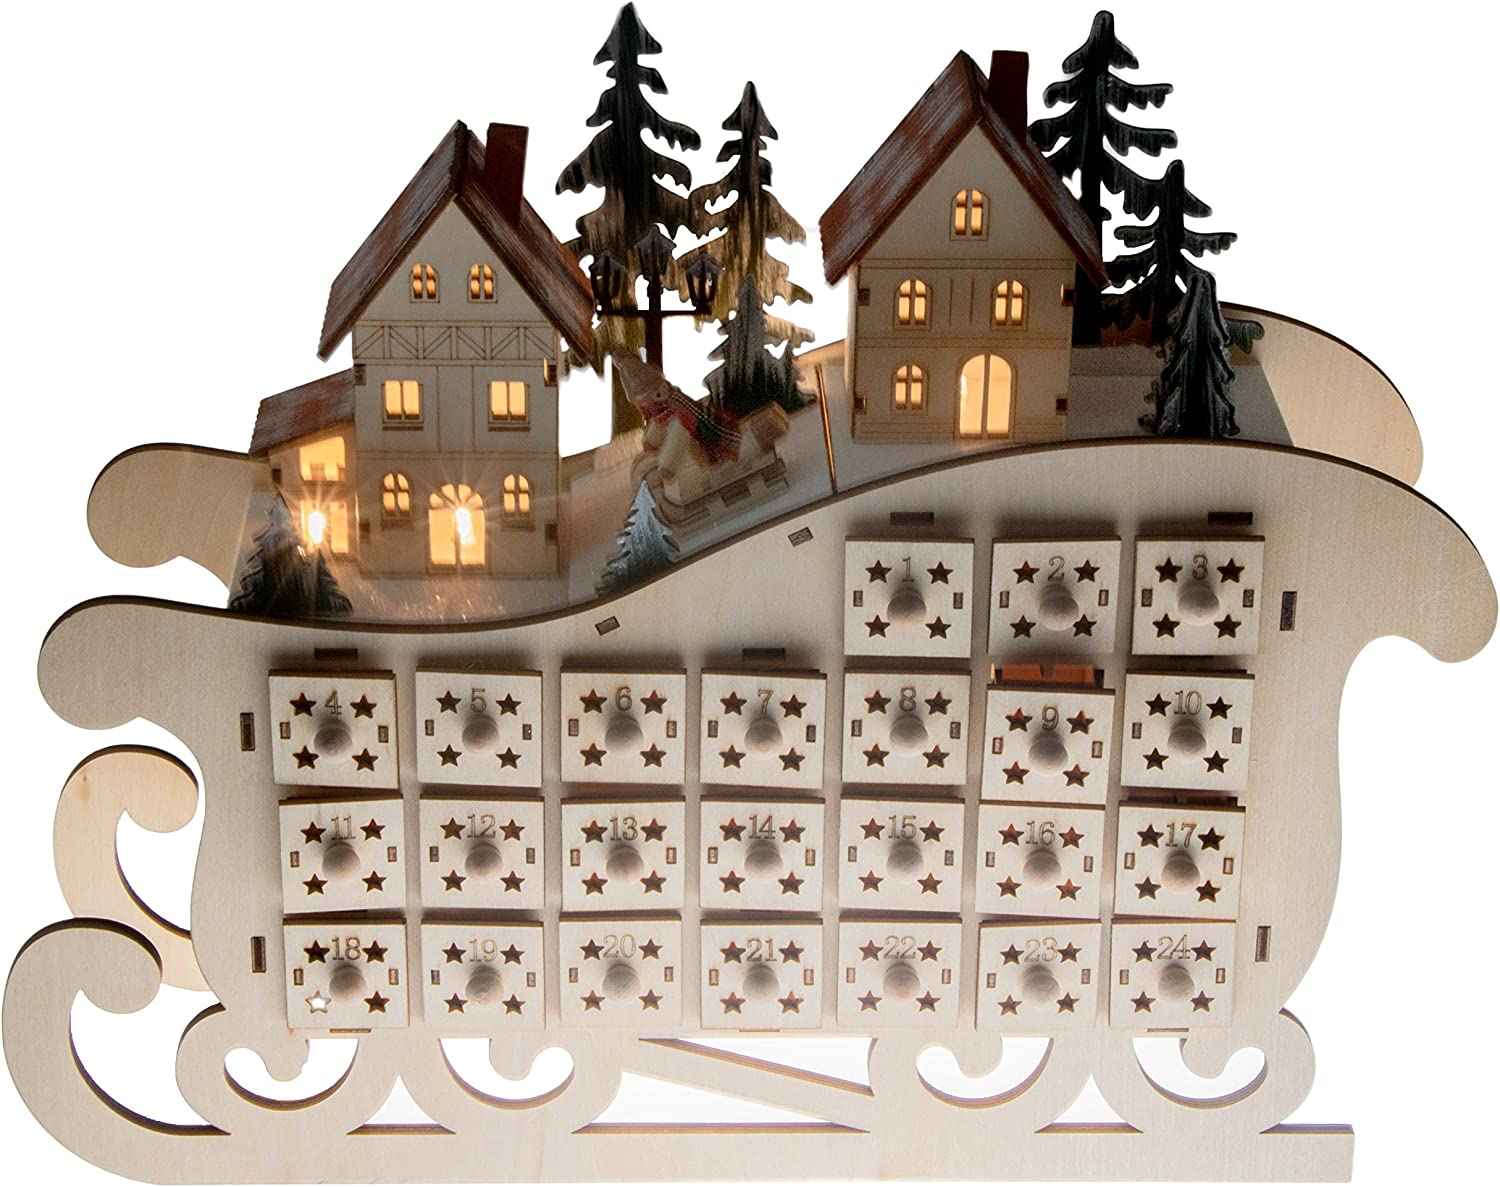 Amazon Com Clever Creations Wooden Village Sleigh Advent Calendar 24 Day Countdown To Christmas Advent Calendar Premium Christmas Decor Light Up Houses Wood Construction 11 25 Tall Toys Games